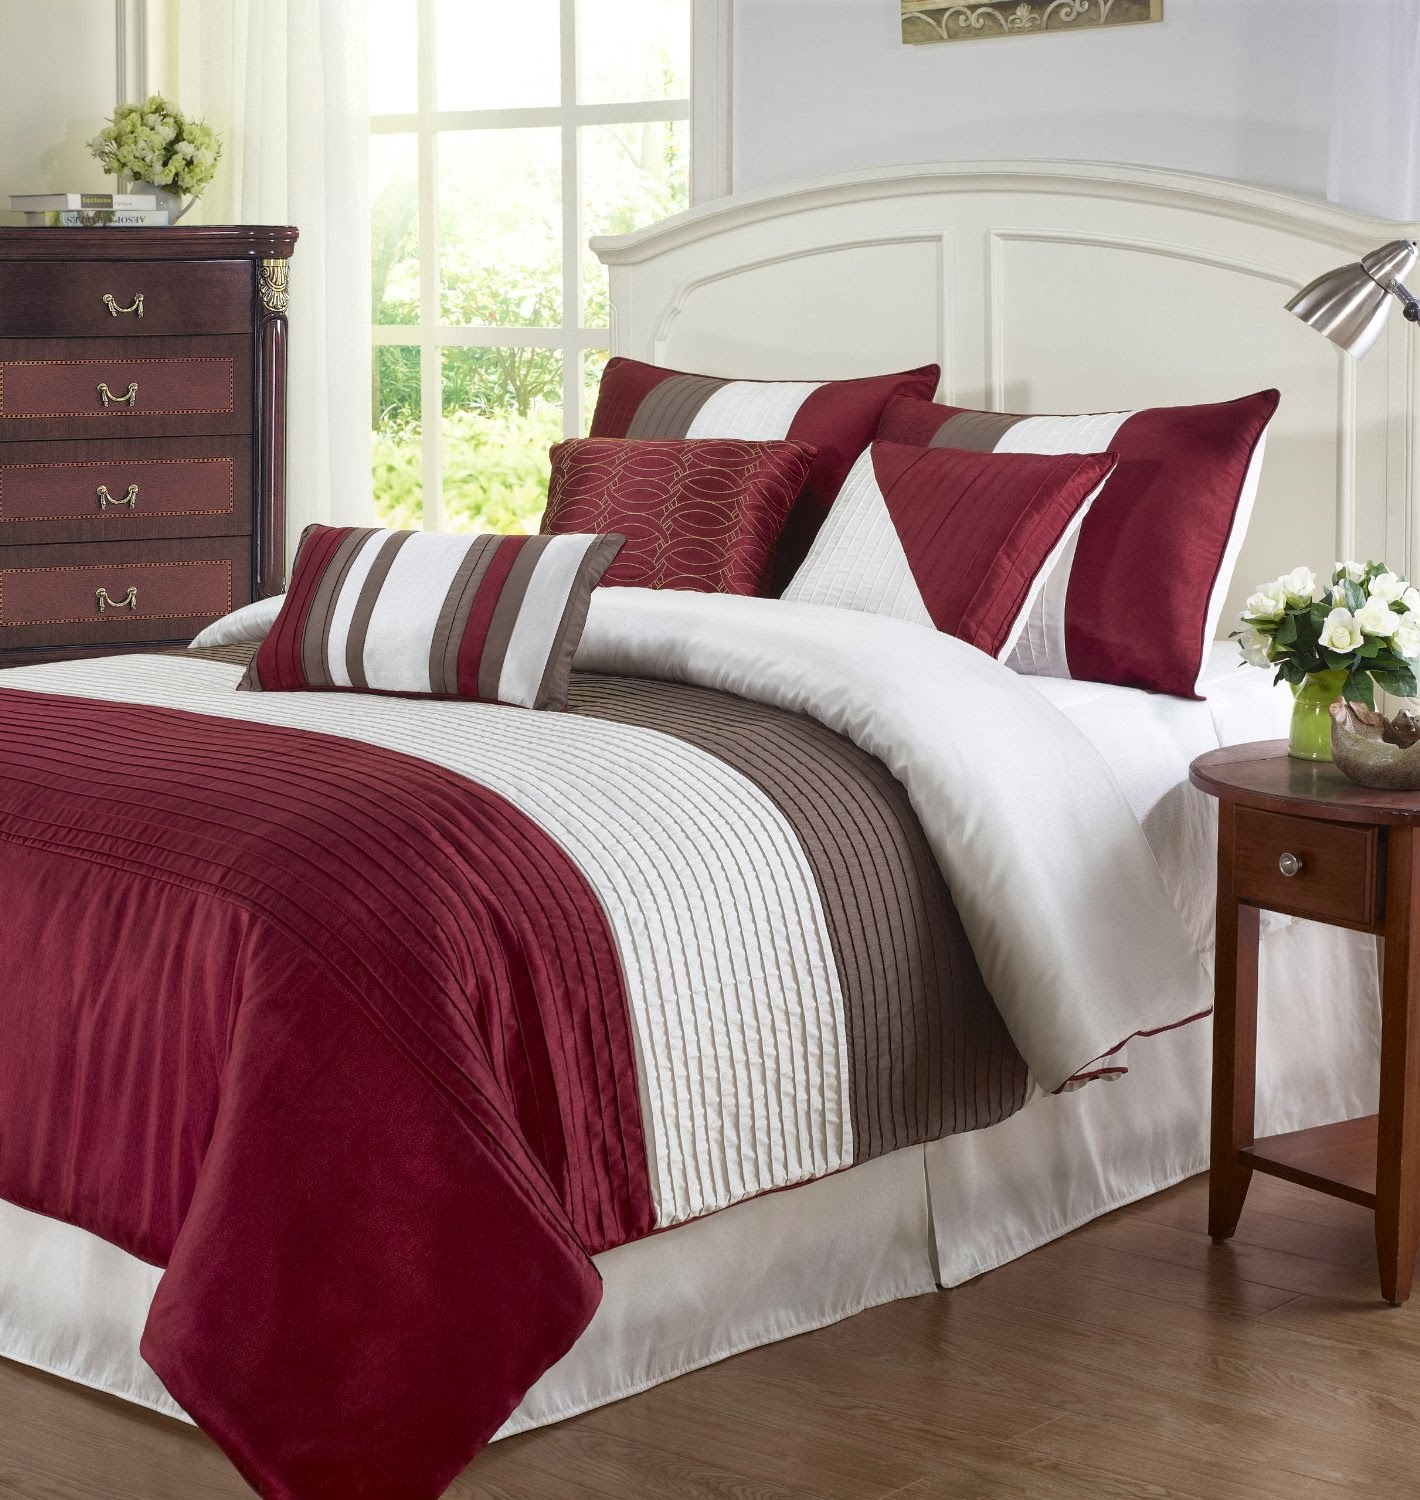 Burgundy And Gray Bedroom Red And Beige Cream Bedding Ease Bedding With Style